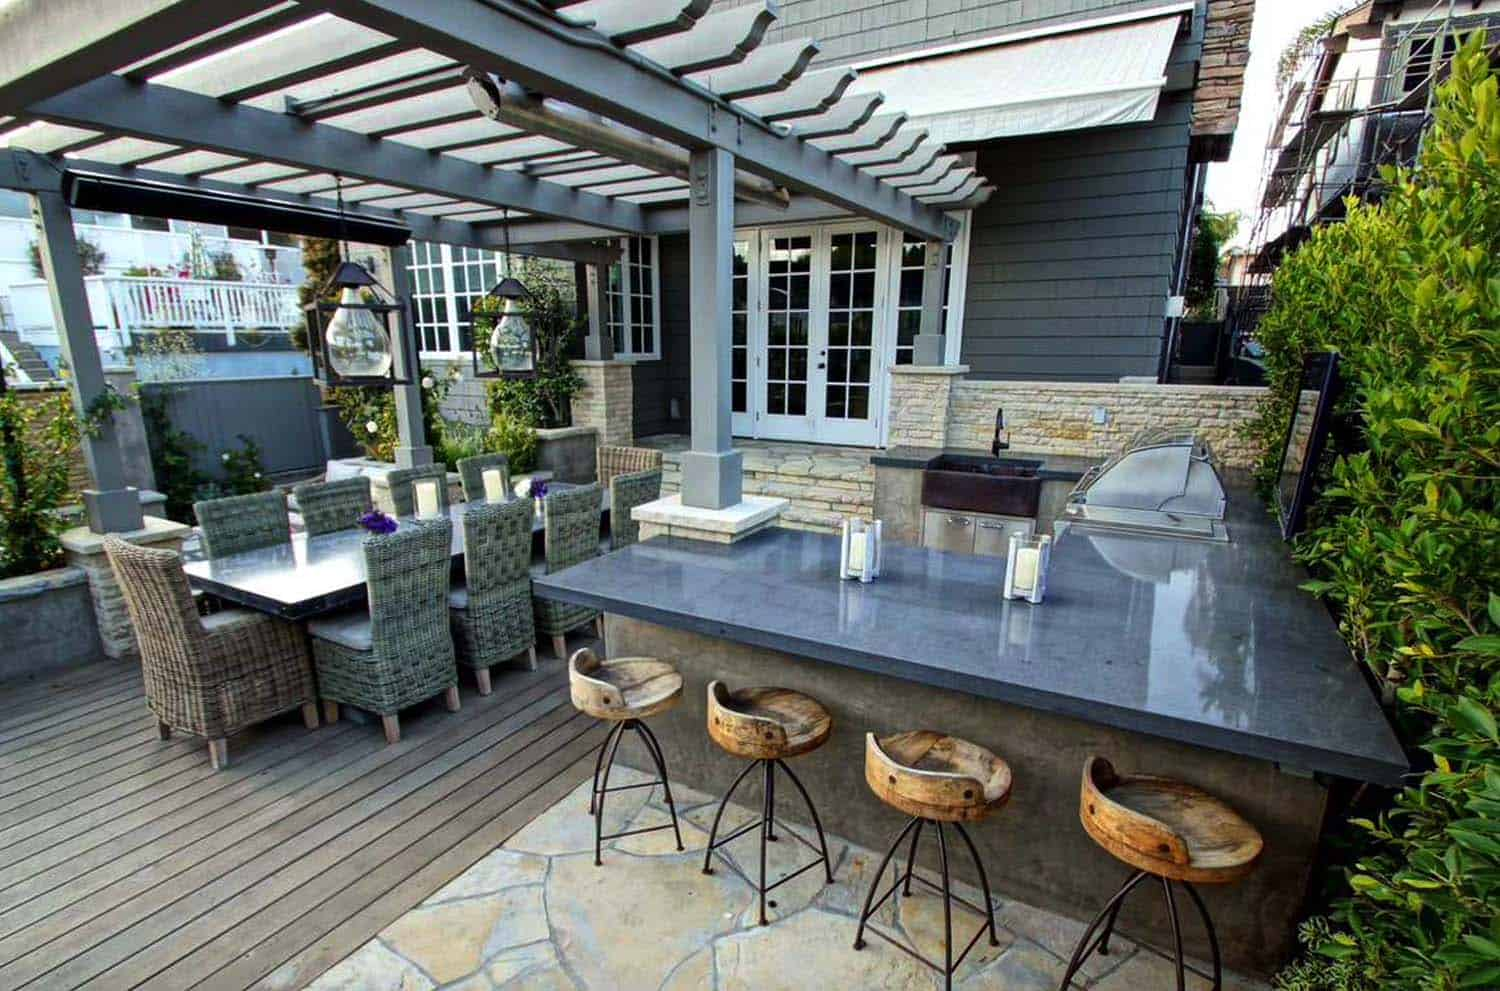 Outdoor Küche Do It Yourself 20 43 Spectacular Outdoor Kitchens With Bars For Entertaining